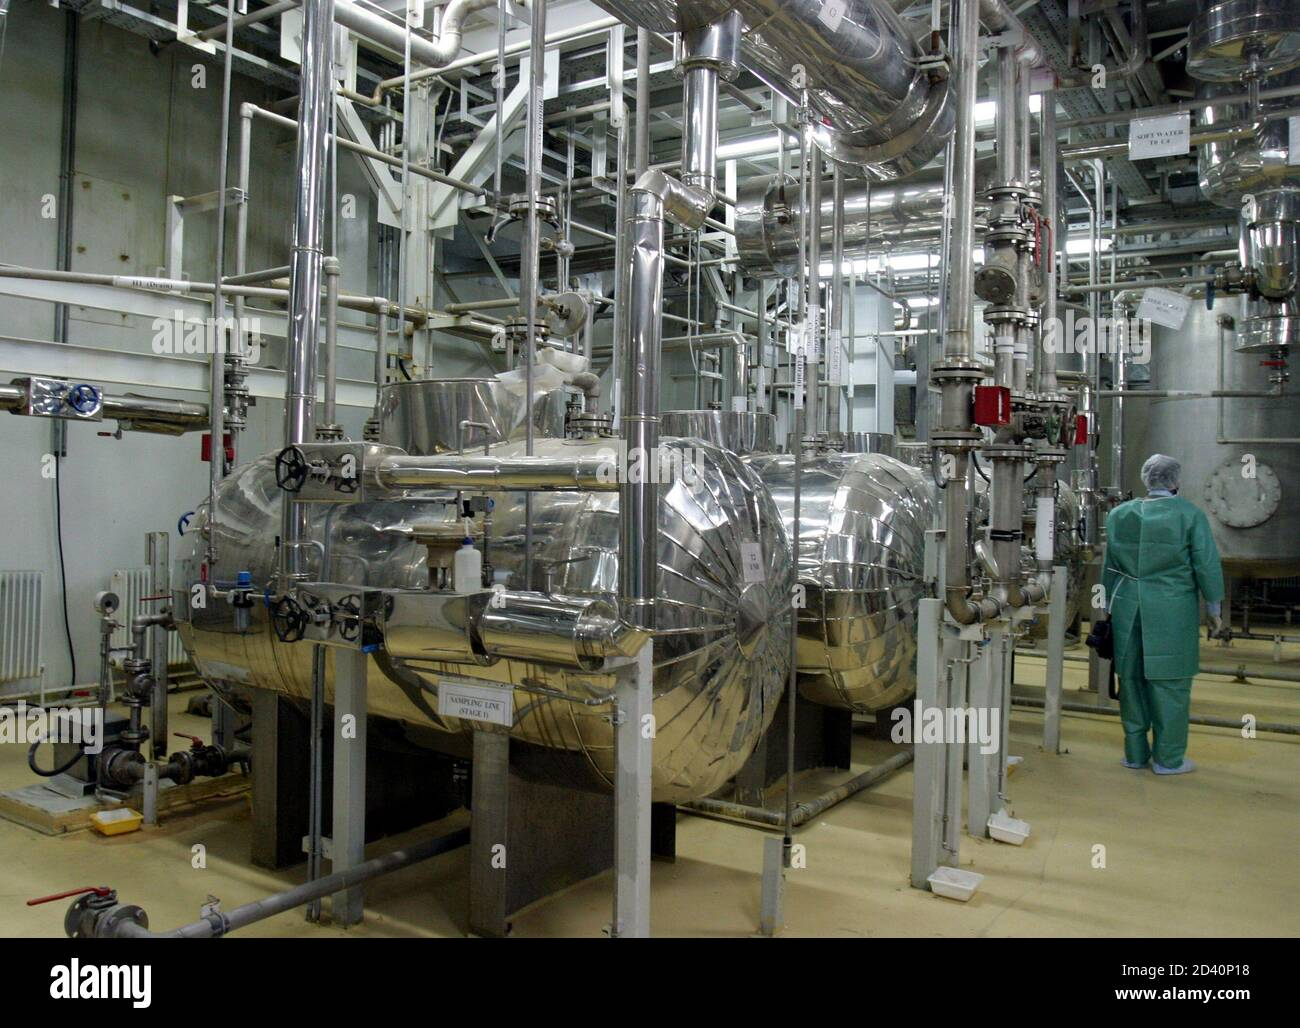 An inside view of a Uranium Conversion Facility producing unit in Isfahan, 340 km (211 miles) south of Tehran, March 30, 2005. [France, Britain and Germany] are considering letting Iran keep nuclear technology that could be used to make bombs, an apparent move towards a compromise with Tehran, diplomats said on Wednesday. Stock Photo